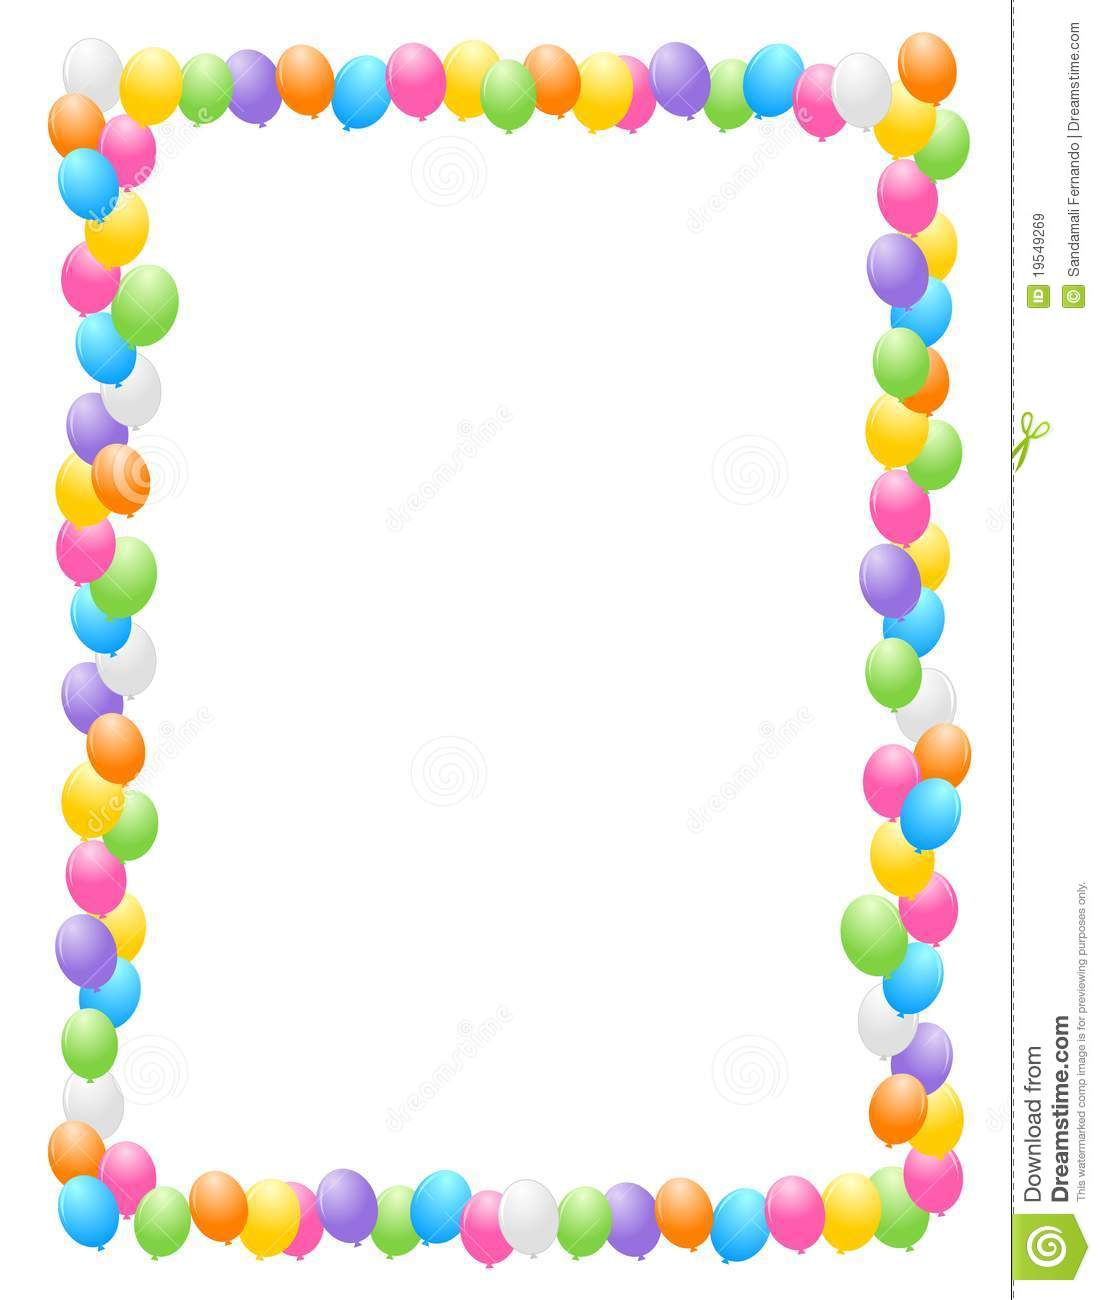 happy birthday border clipart  free download on clipartmag